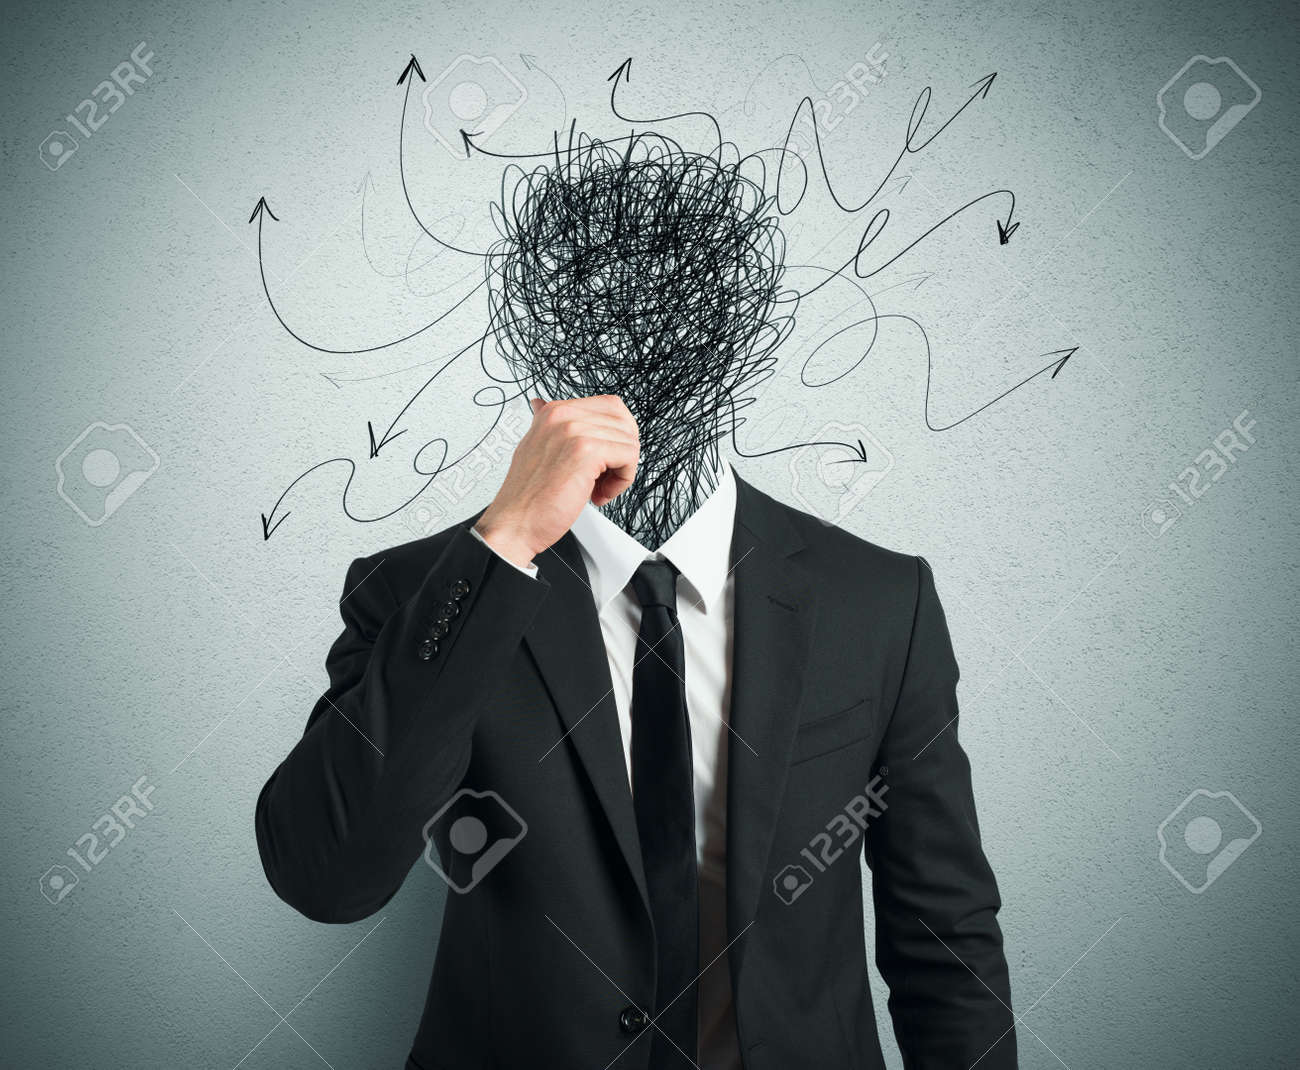 Confused businessman with arrows and lines in head - 27430478